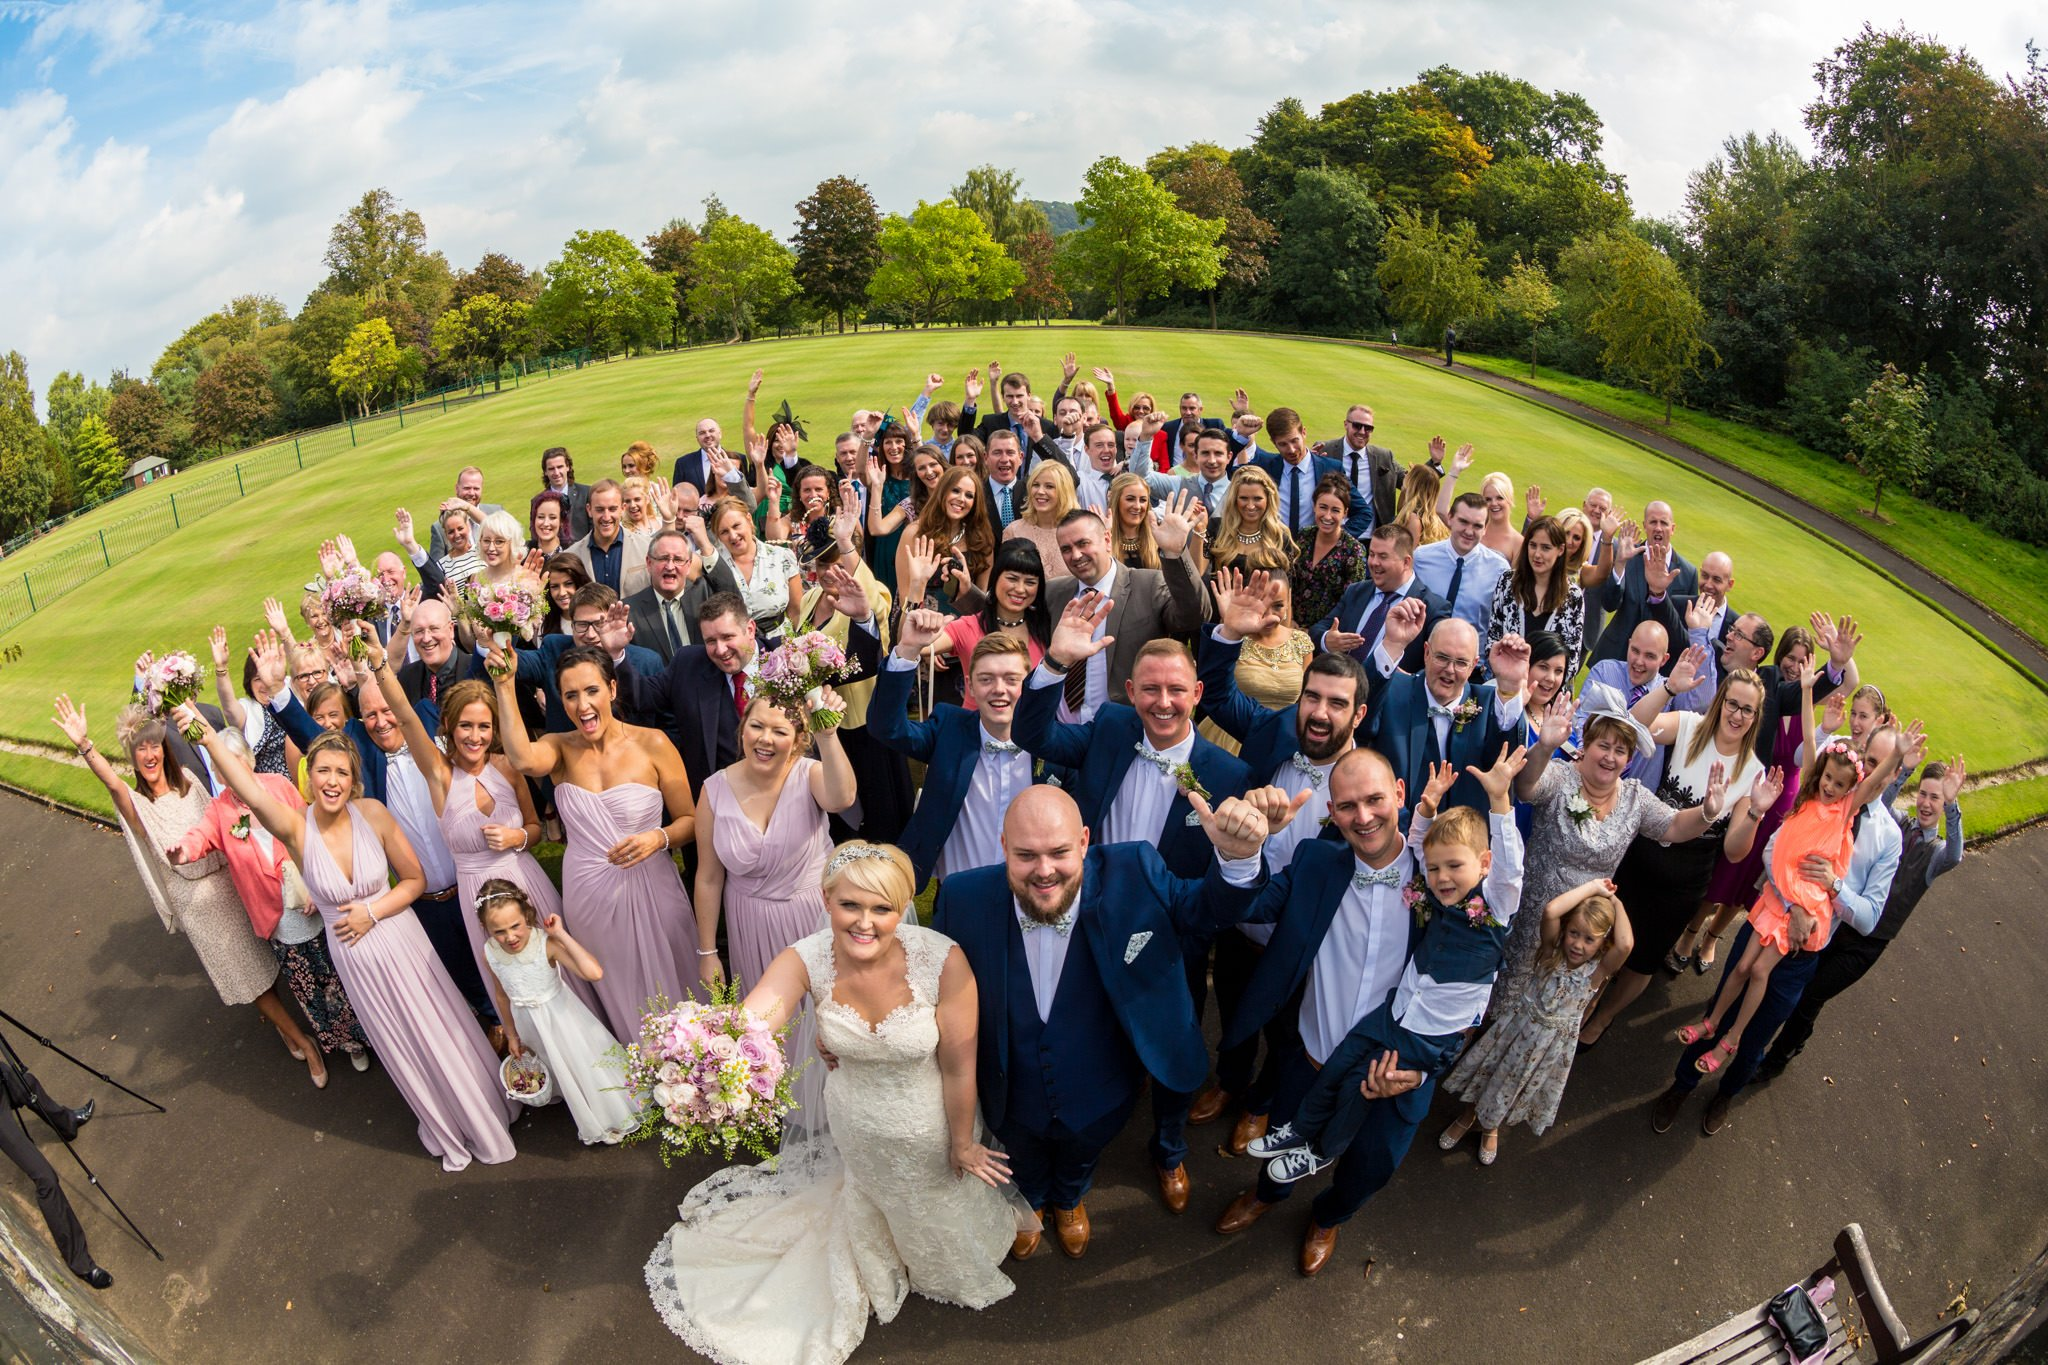 Tipi-Wedding-Photography-Cheshire-Photographer-20140913--10010